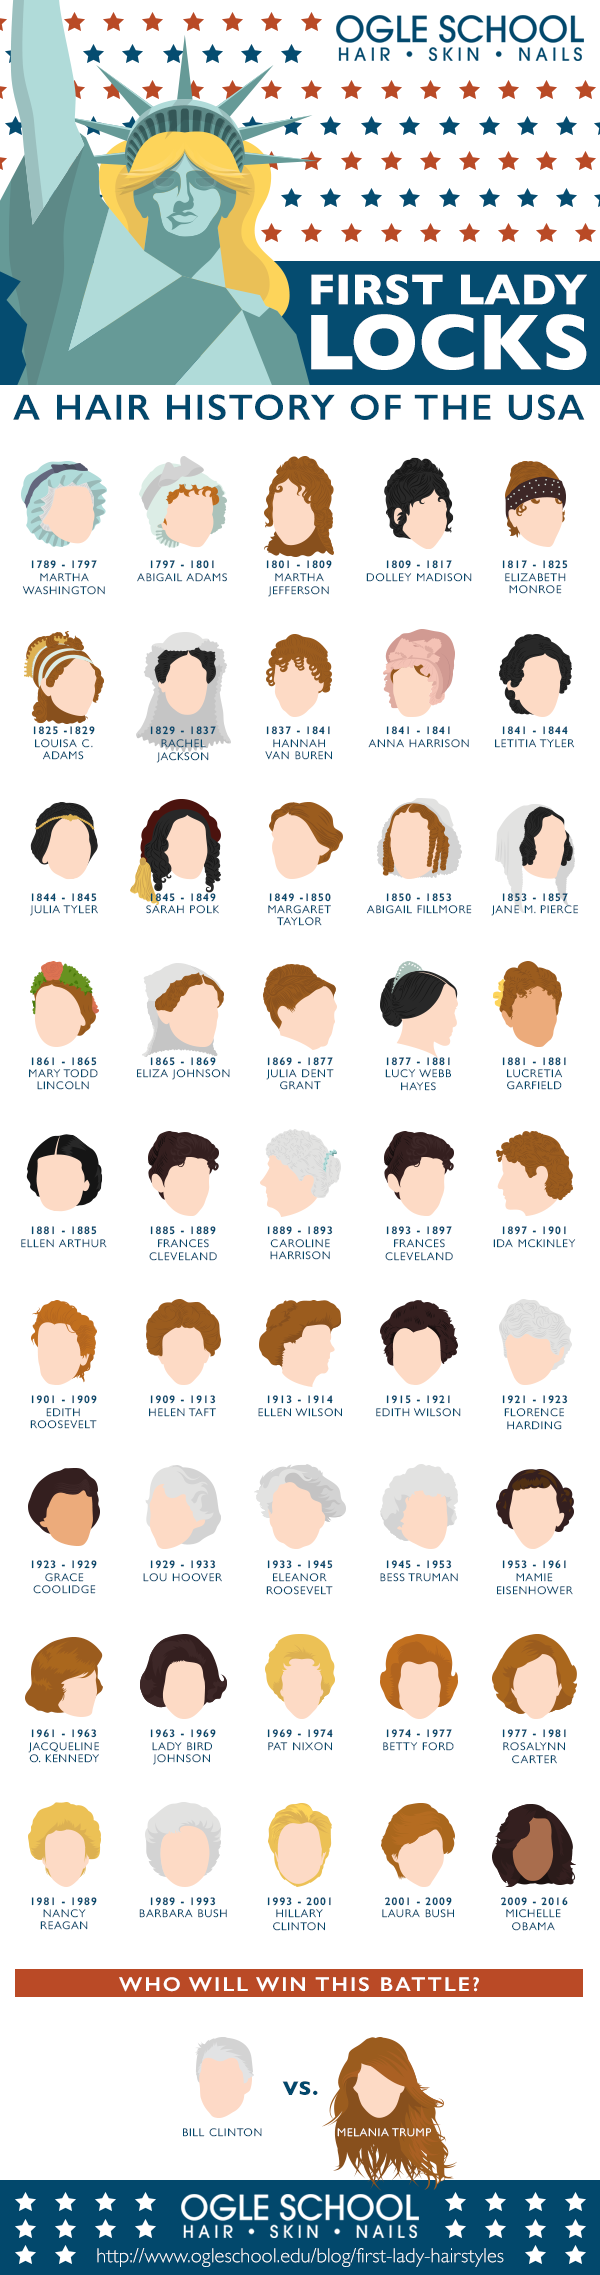 First Lady Locks: A Hair History of the US